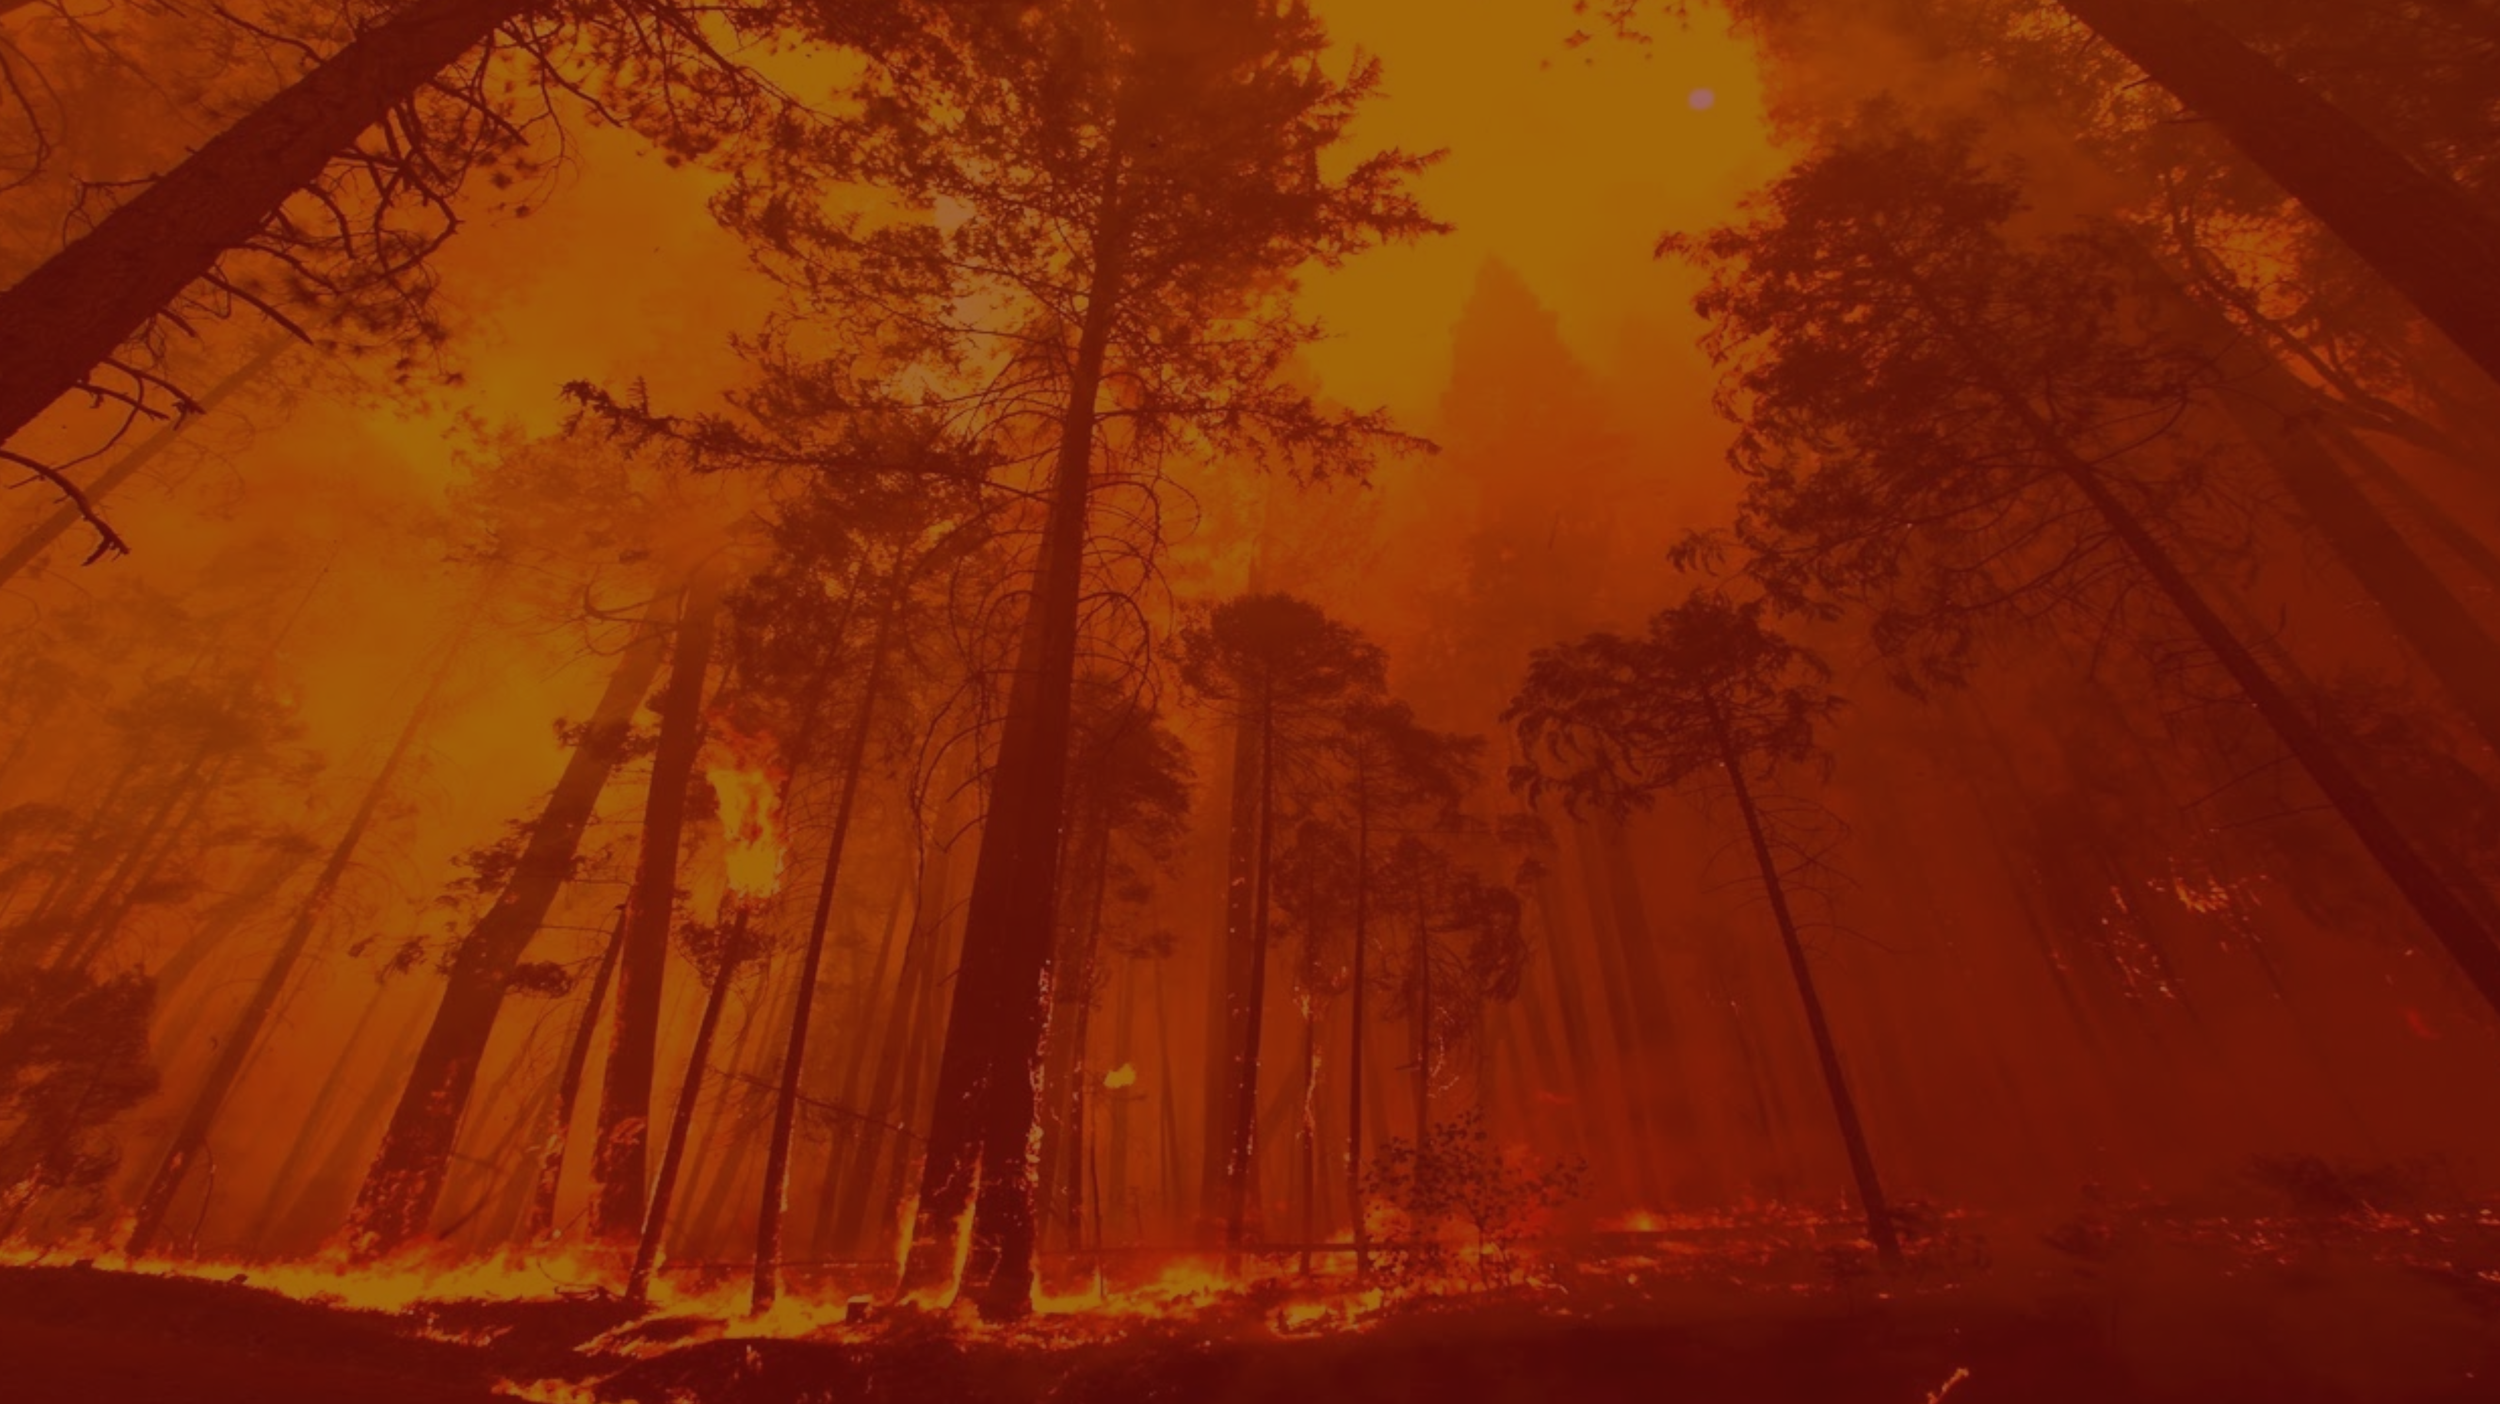 Future of Forestfighting - What if we could better predict and fight forest fires?